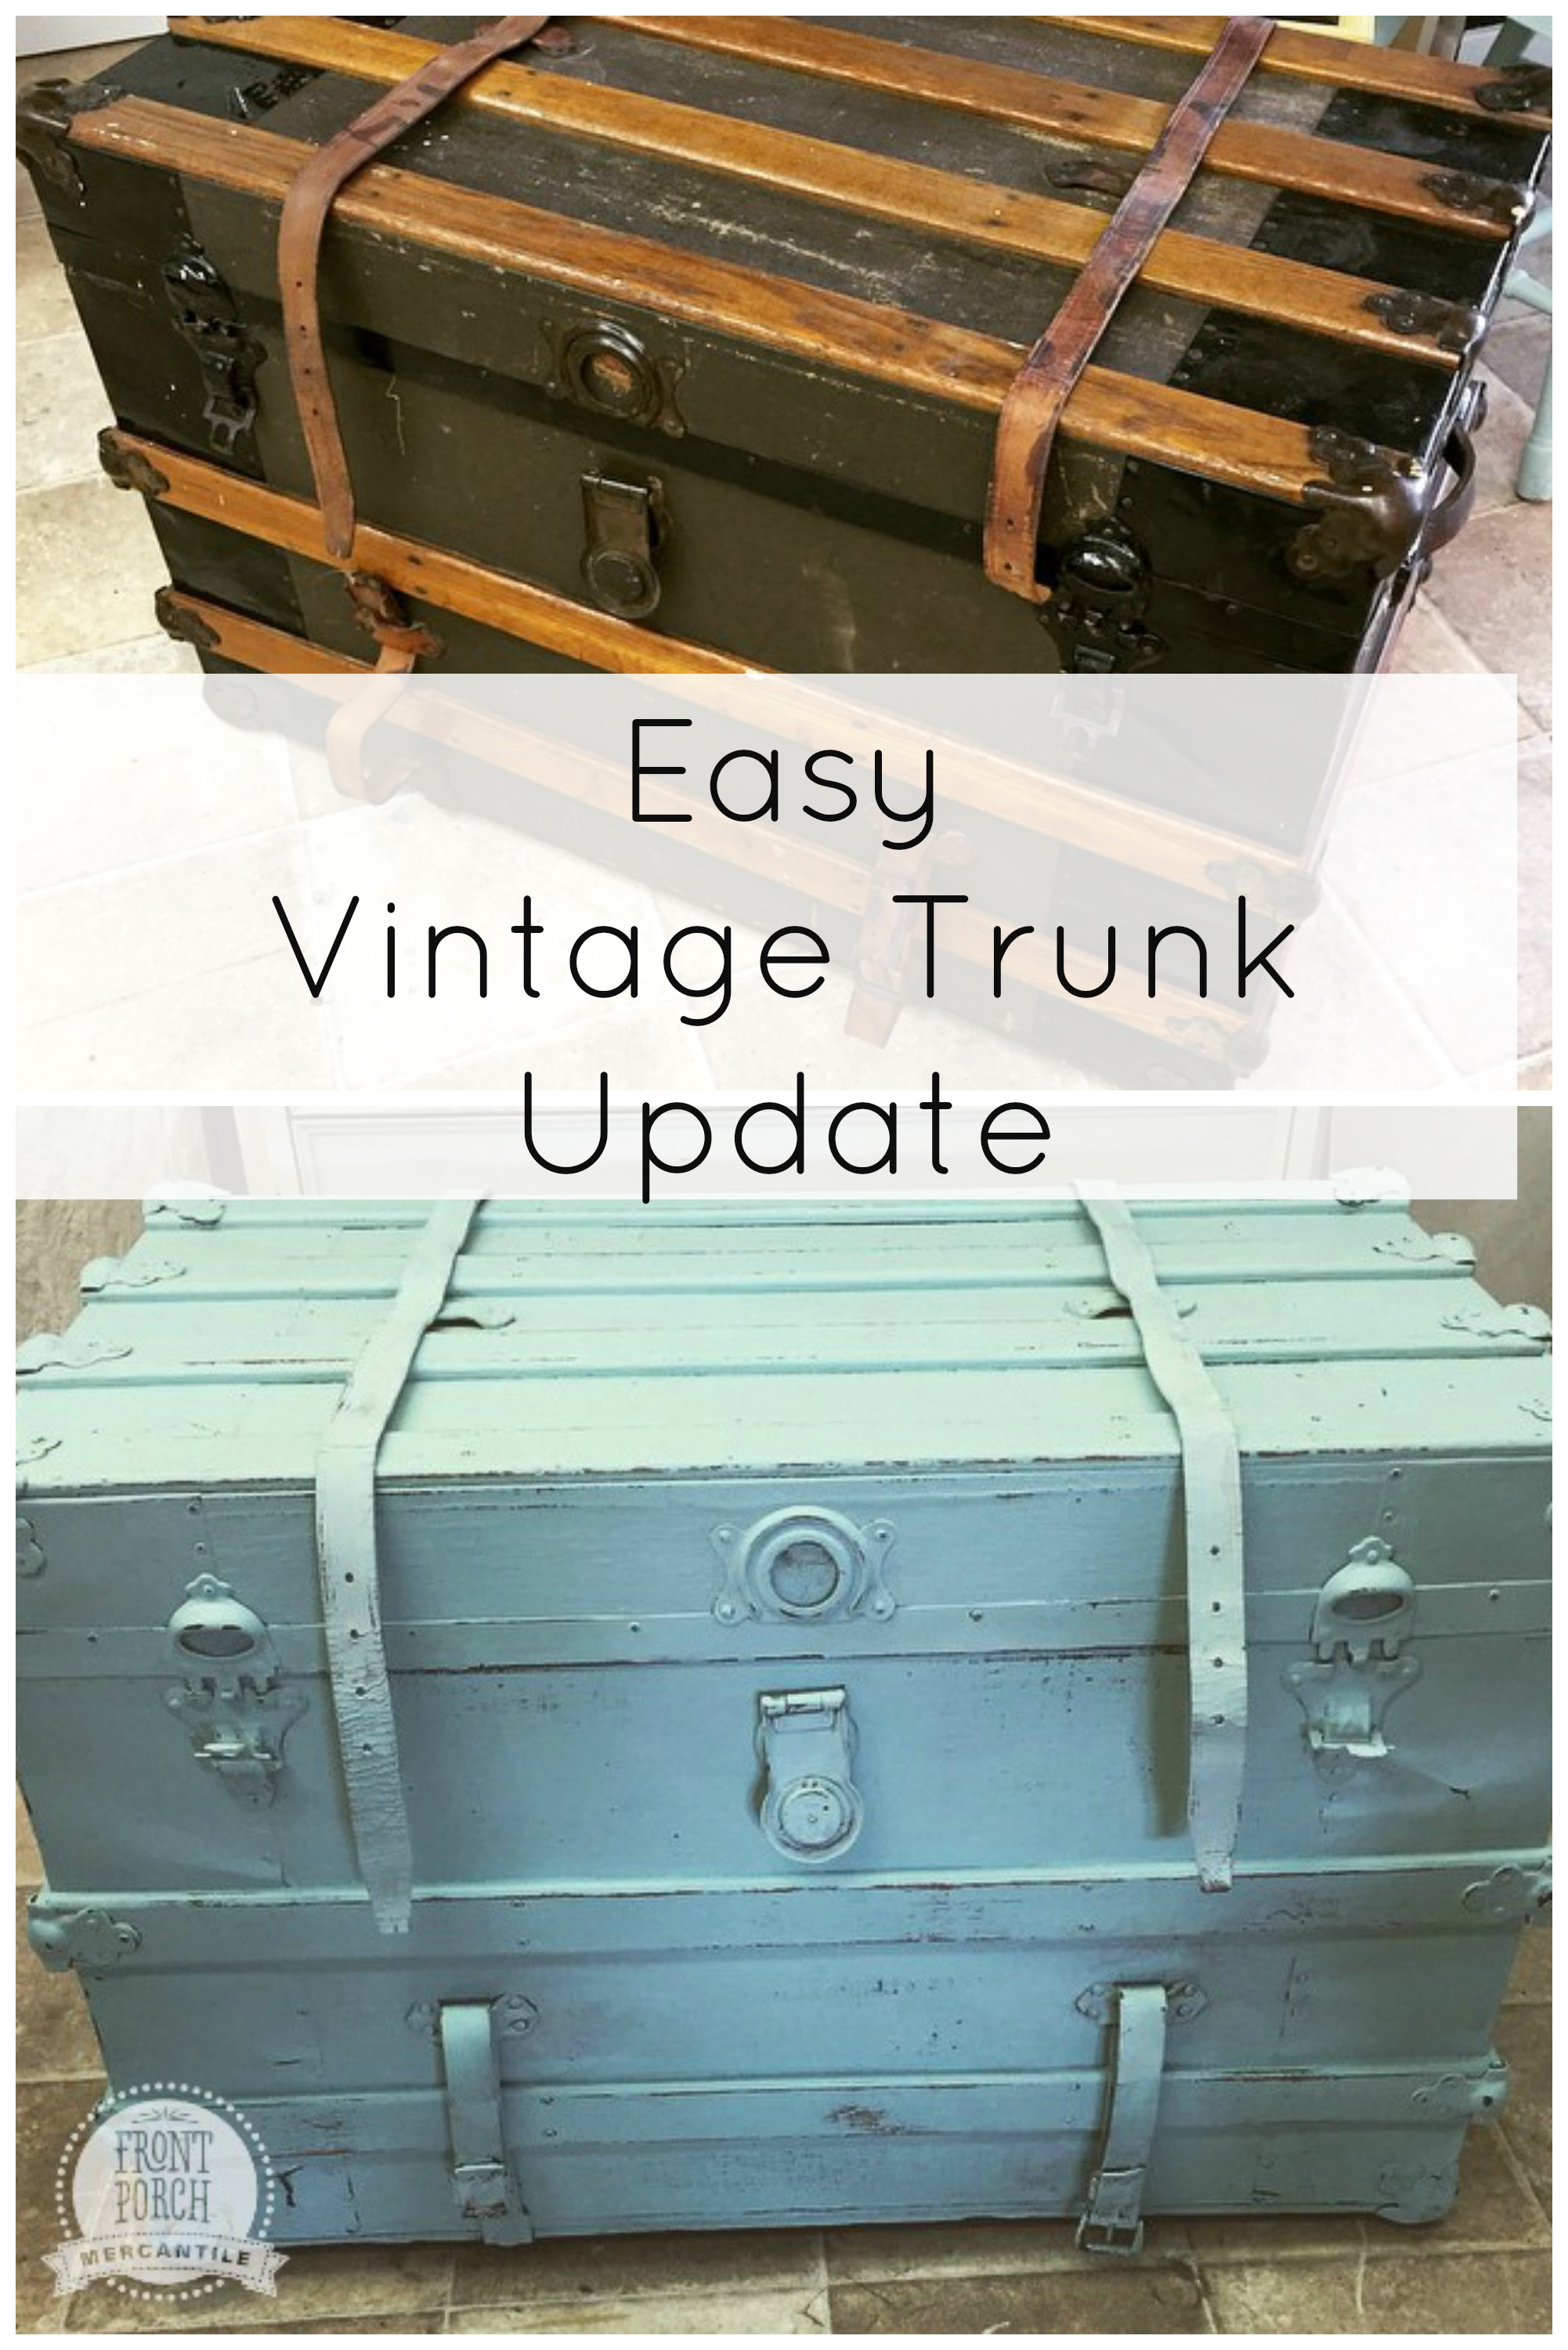 Old trunk gets a new life front porch mercantile - How to paint an old trunk ...